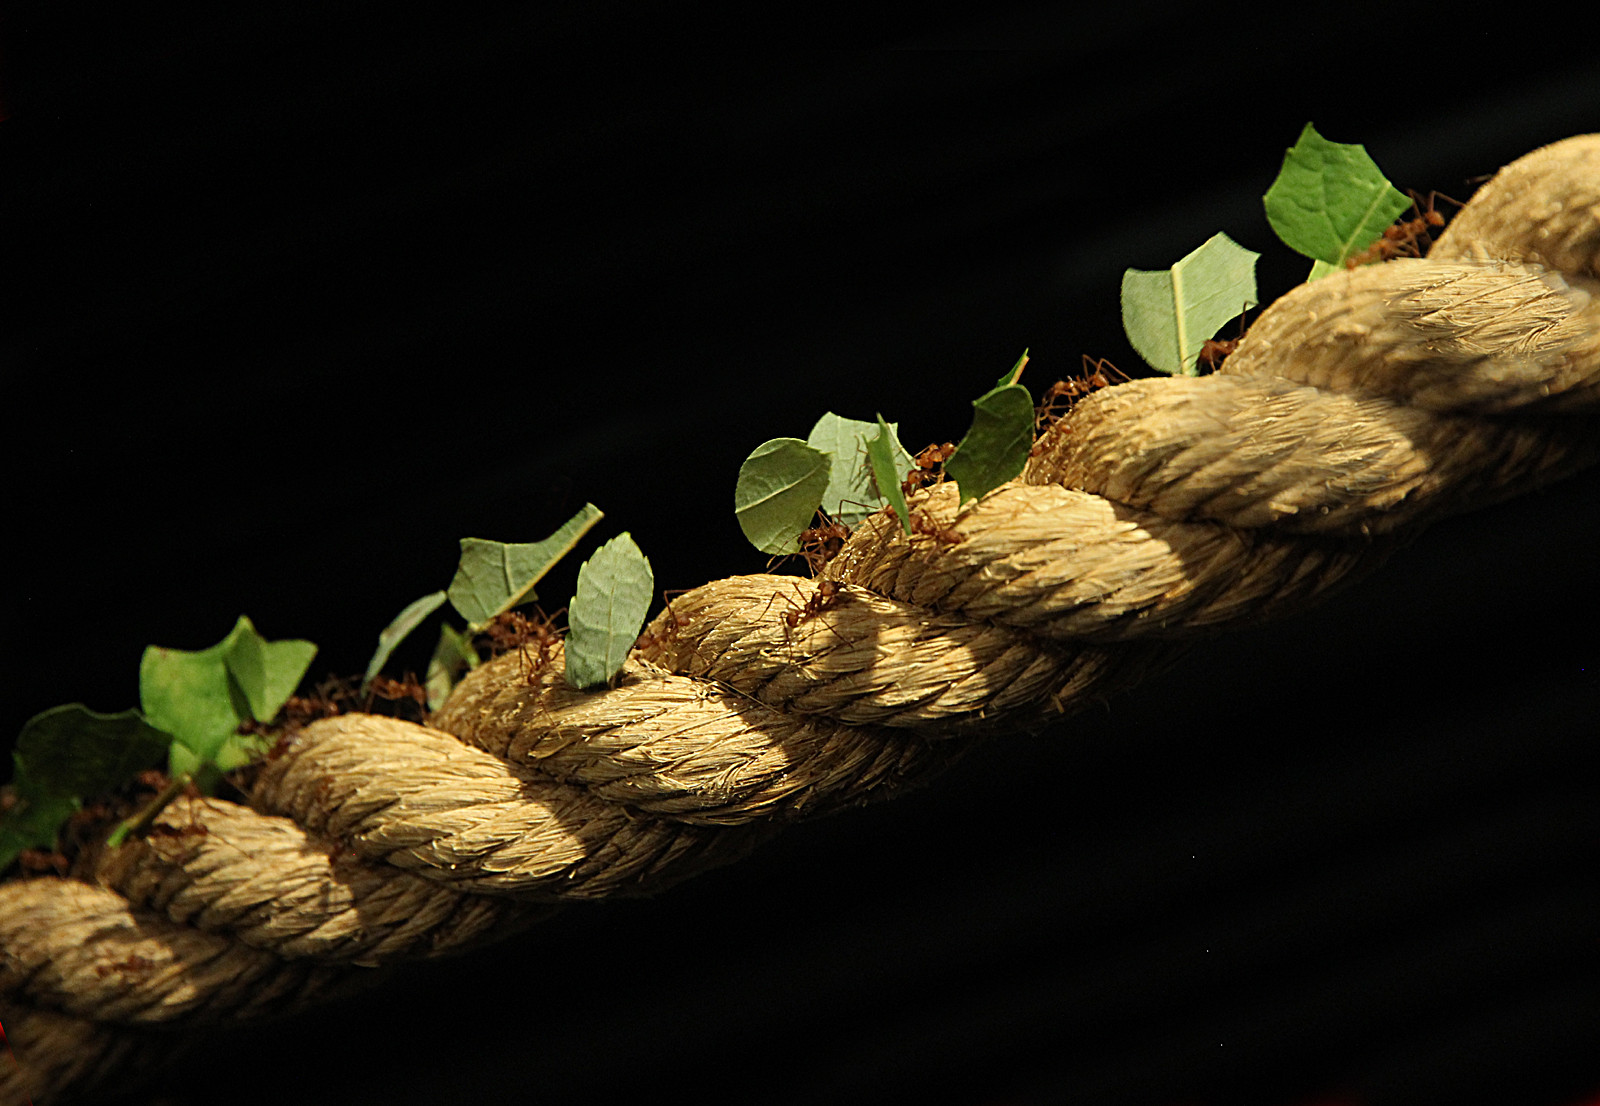 PDI - Leaf-cutter Ants in Transit by Peter Knott ( 13 marks) - Starred